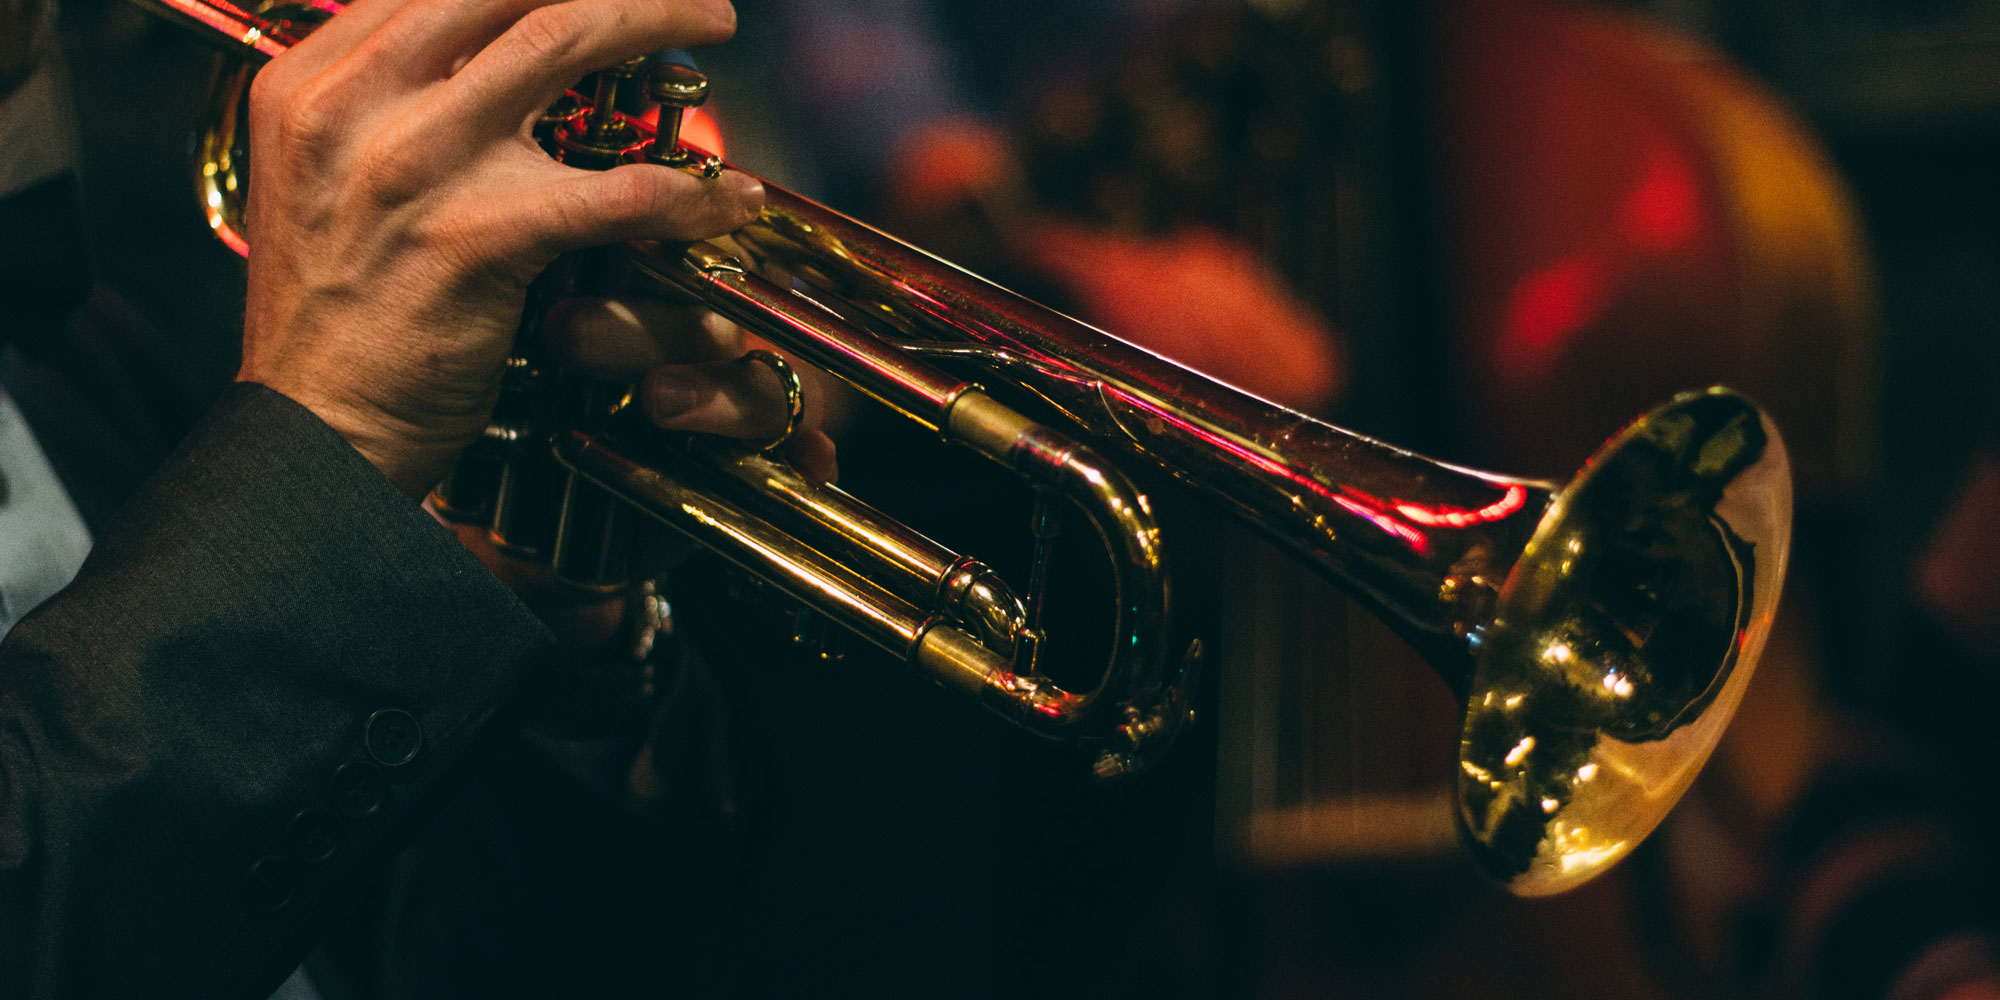 LU Brass Festival brings music, master classes, and more on March 1-3